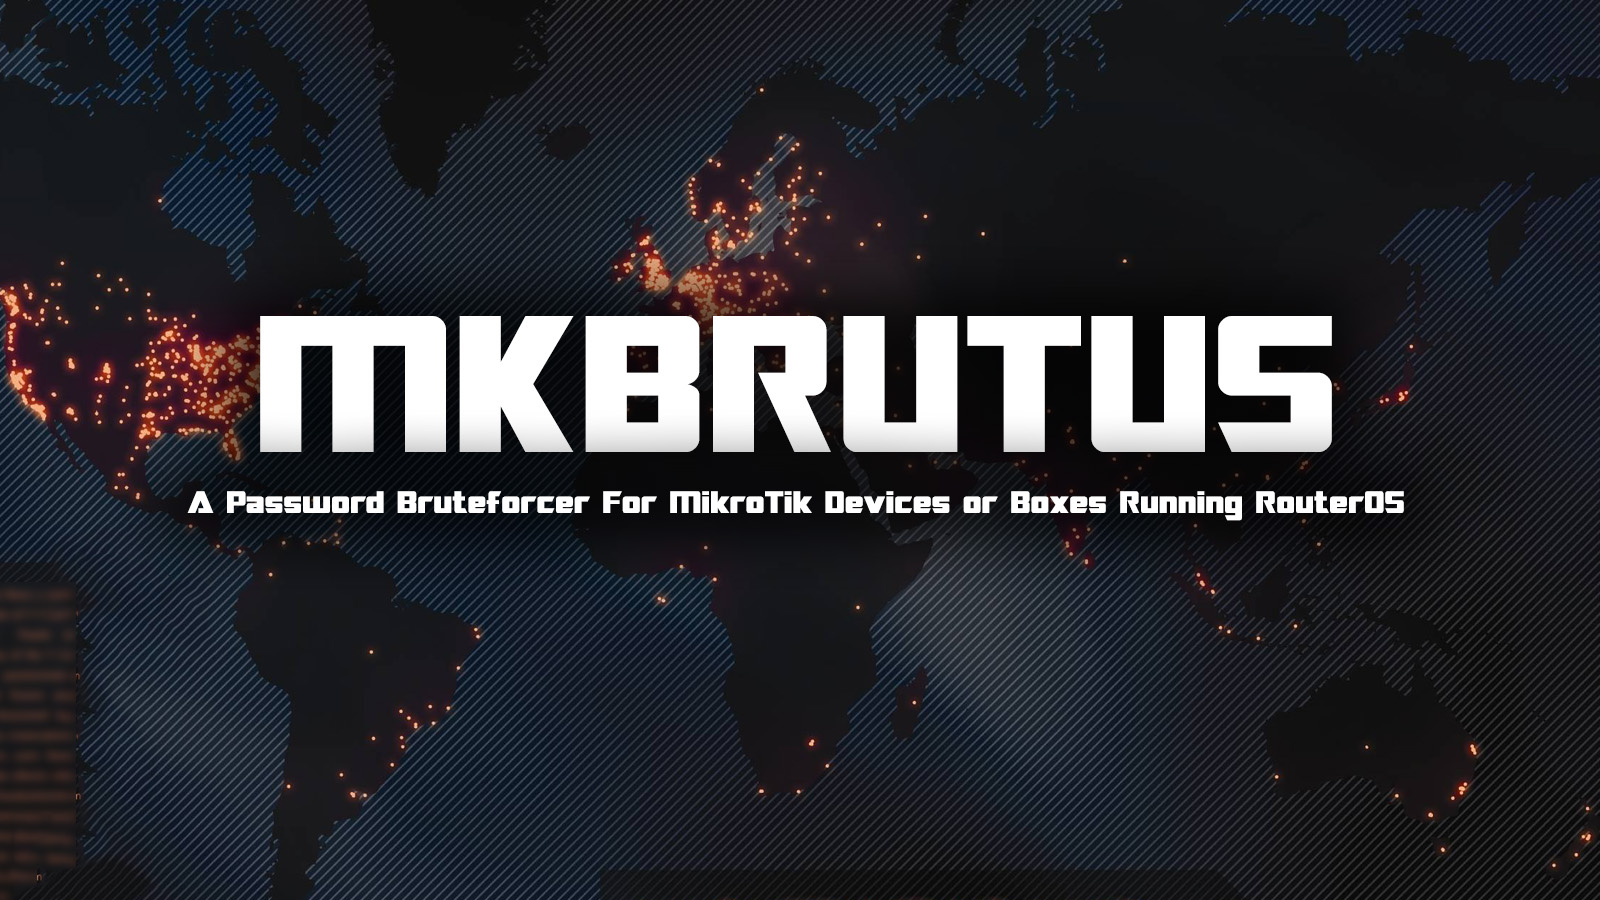 MKBRUTUS Bruteforce Tool